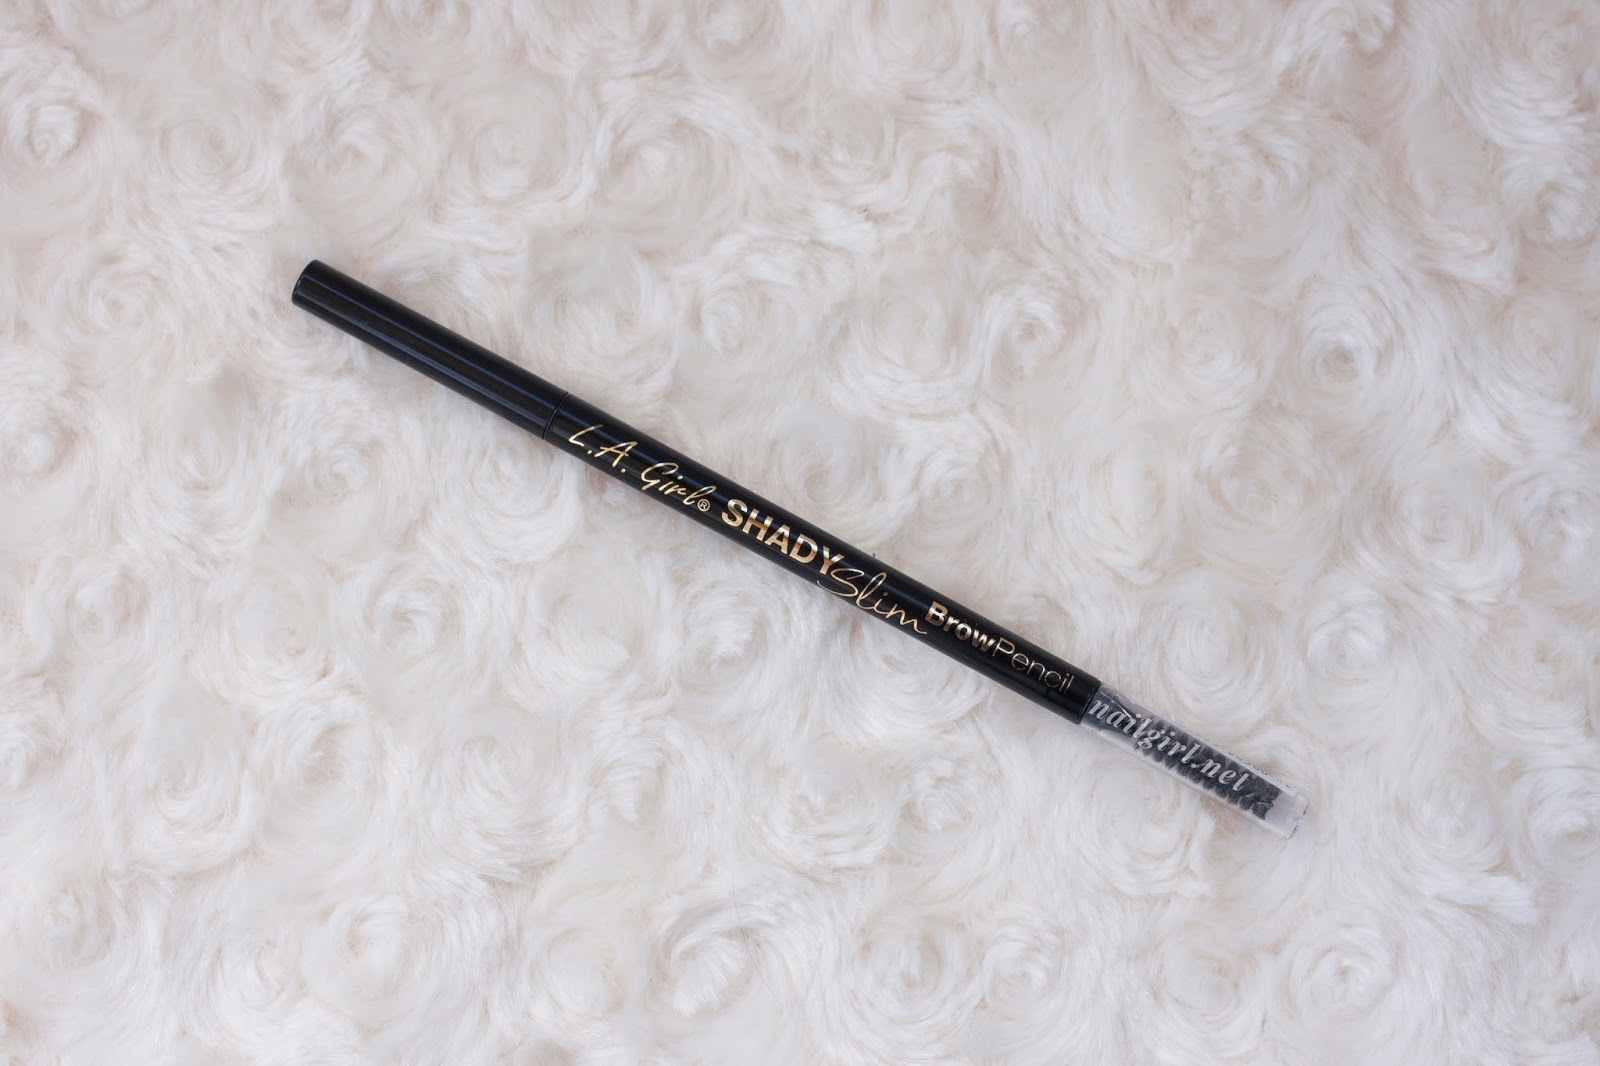 l.a. girl shady slim brow pencil review packaging